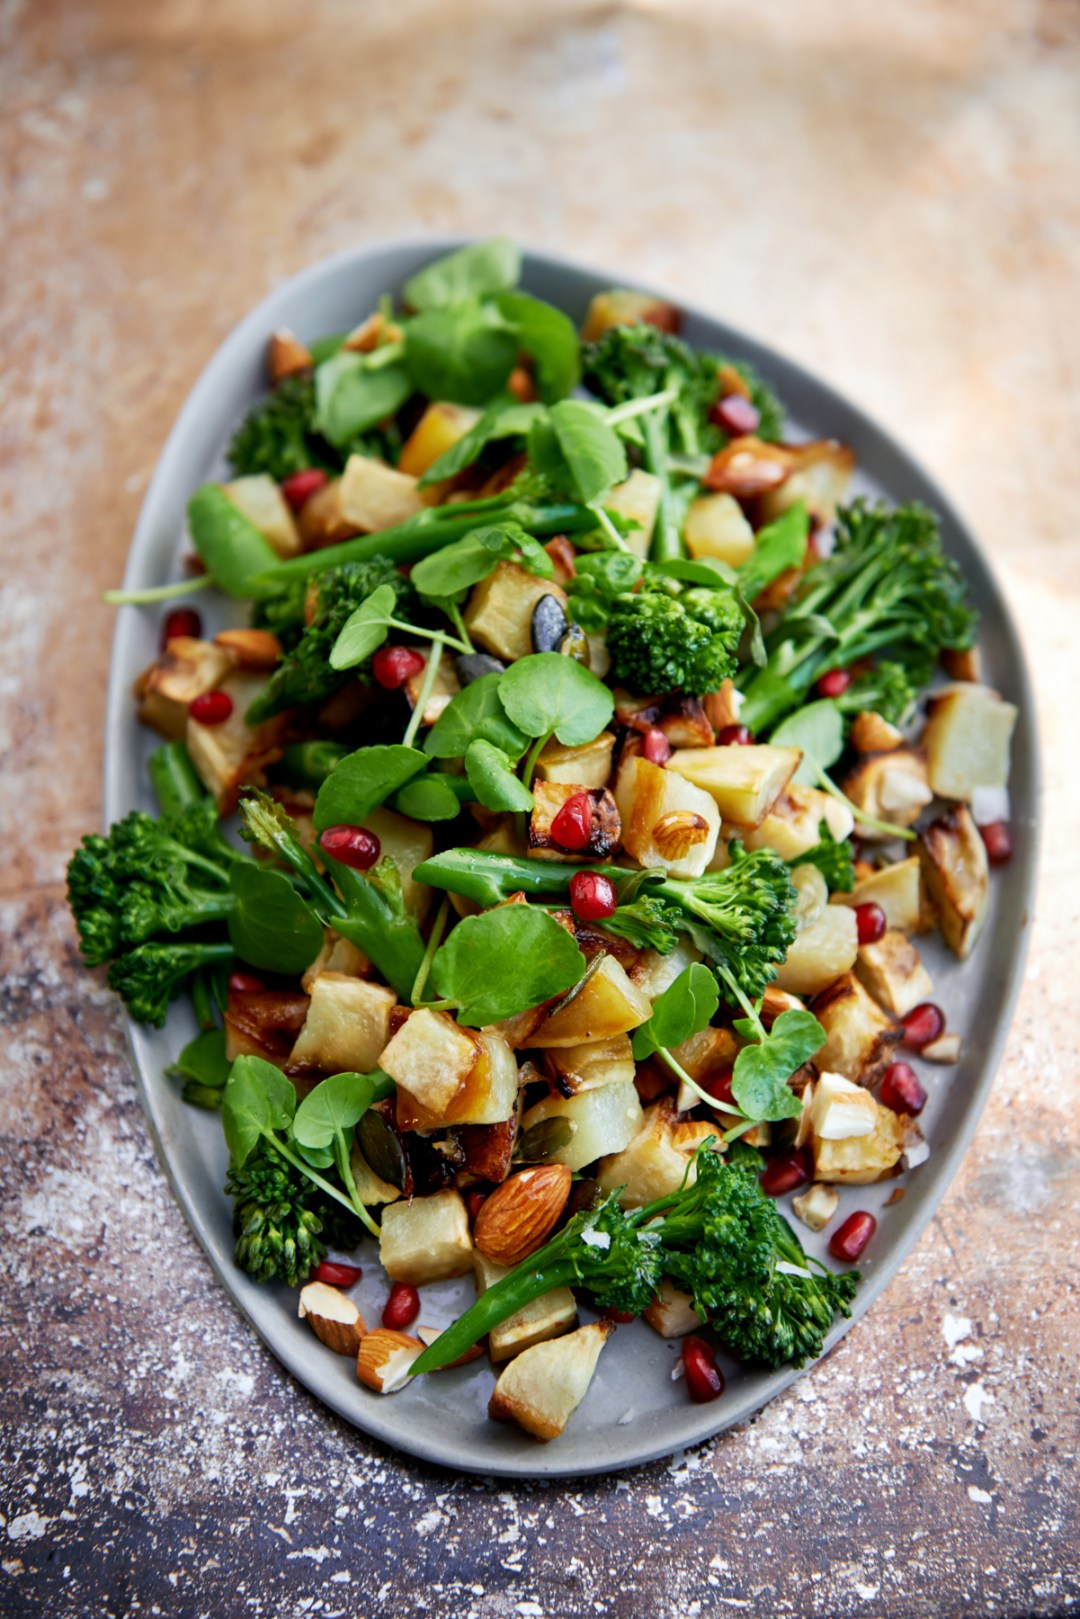 Freshly grilled vegetable salad with sweet potato, broccoli, almonds, pomegranate seeds, and spinach